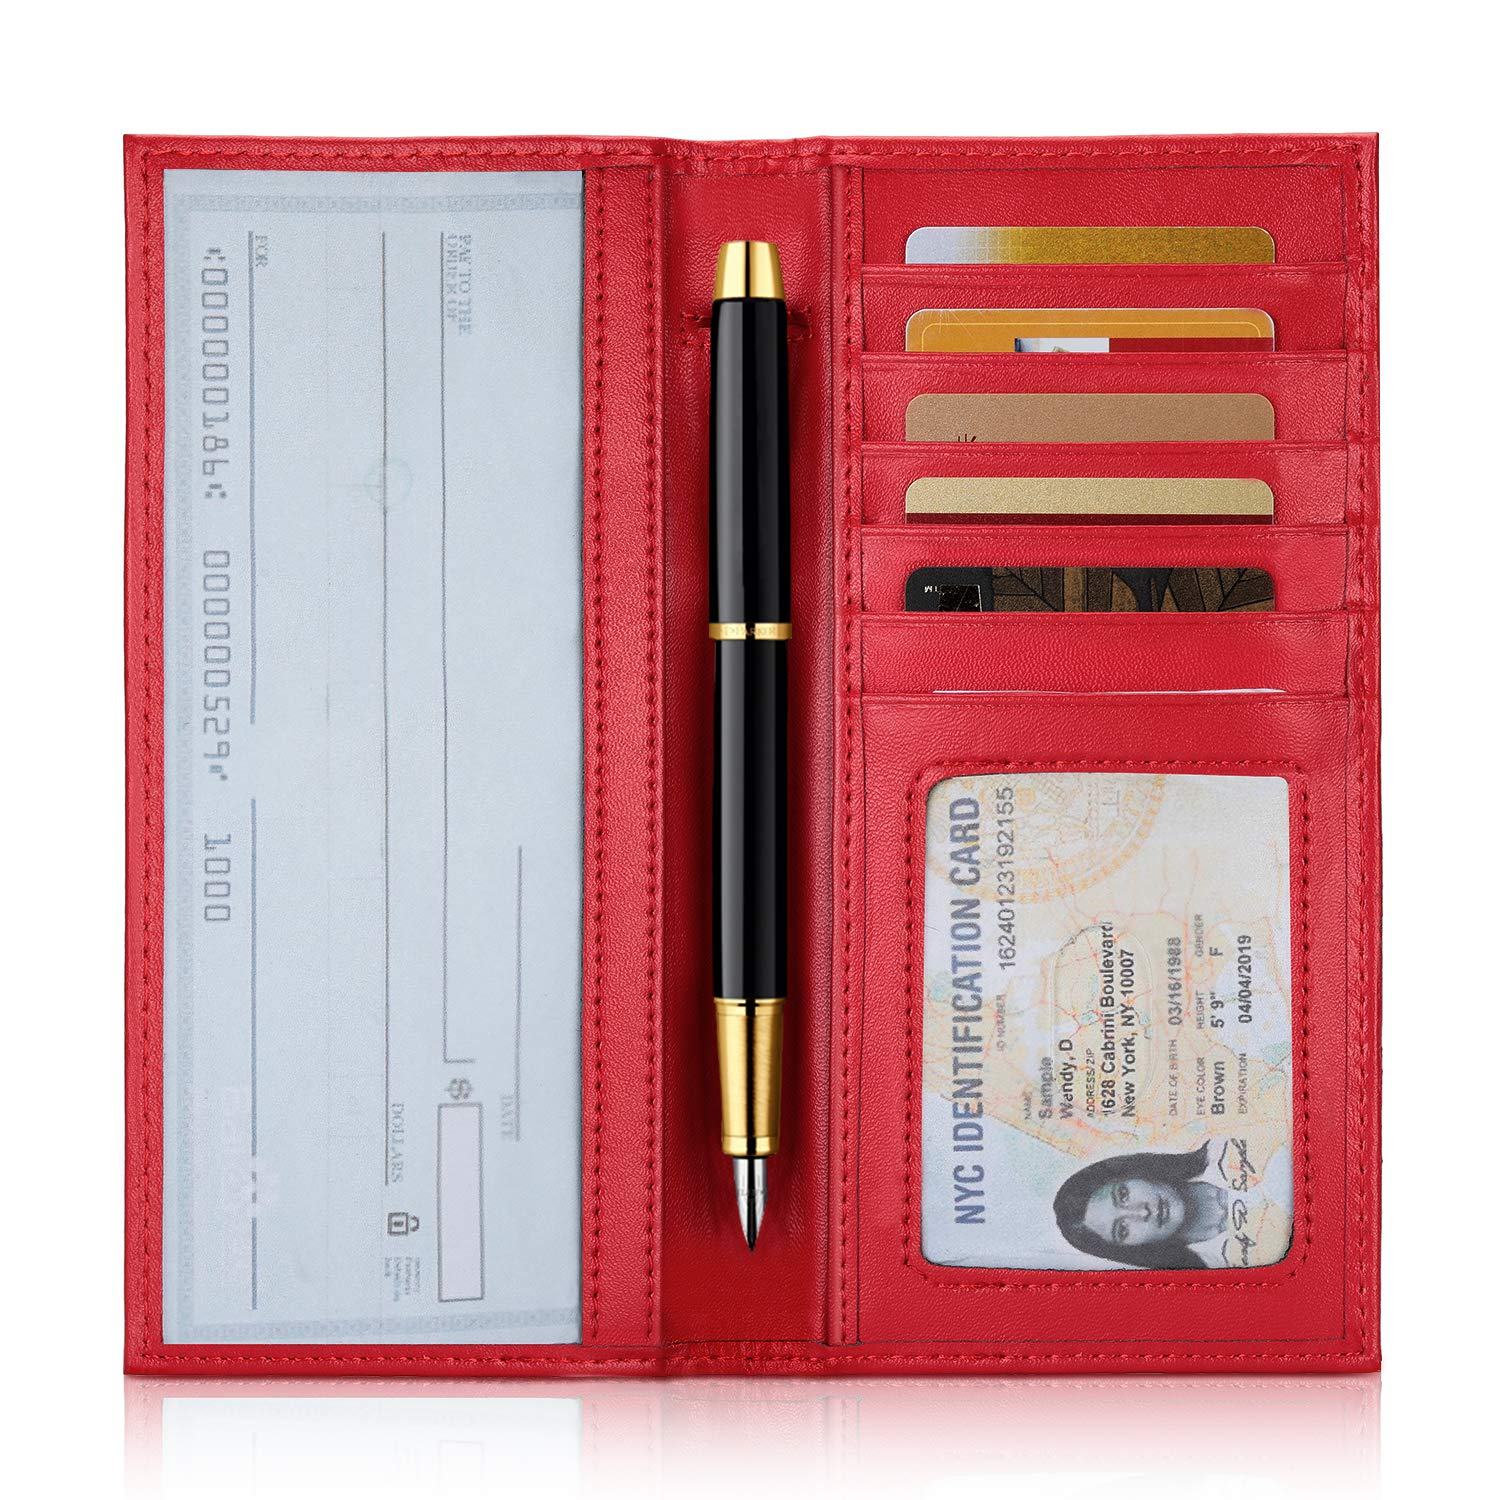 YOOMALL Leather Checkbook Cover RFID Blocking Slim Wallet Credit Card Holder